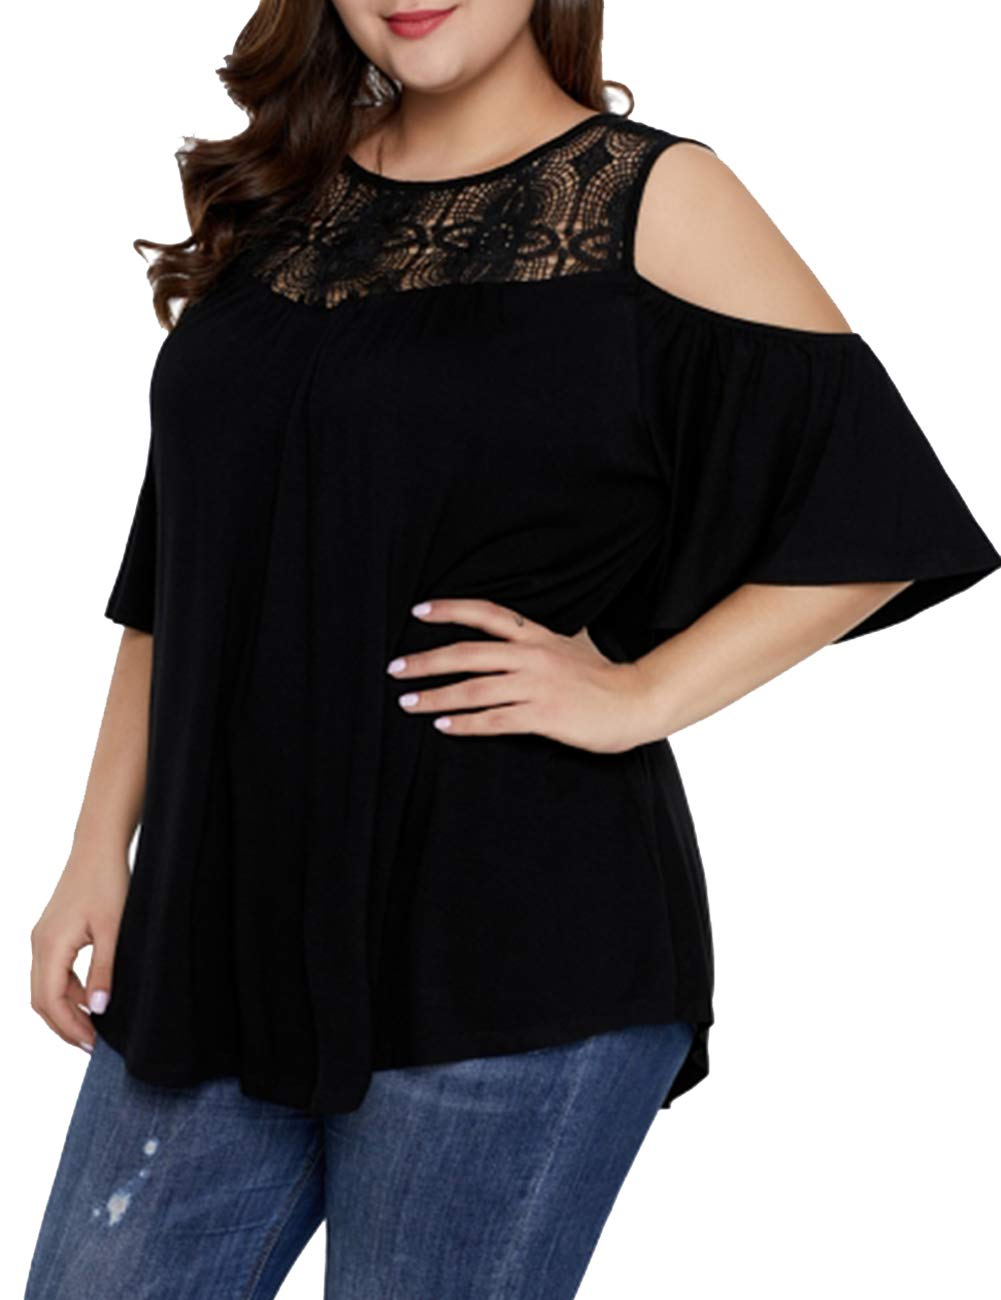 DIOLOCA Lace Top for Women Plus Size Cold Shoulder Tunic Tops Casual Swing Shirts Summer Solid Color Black 3X